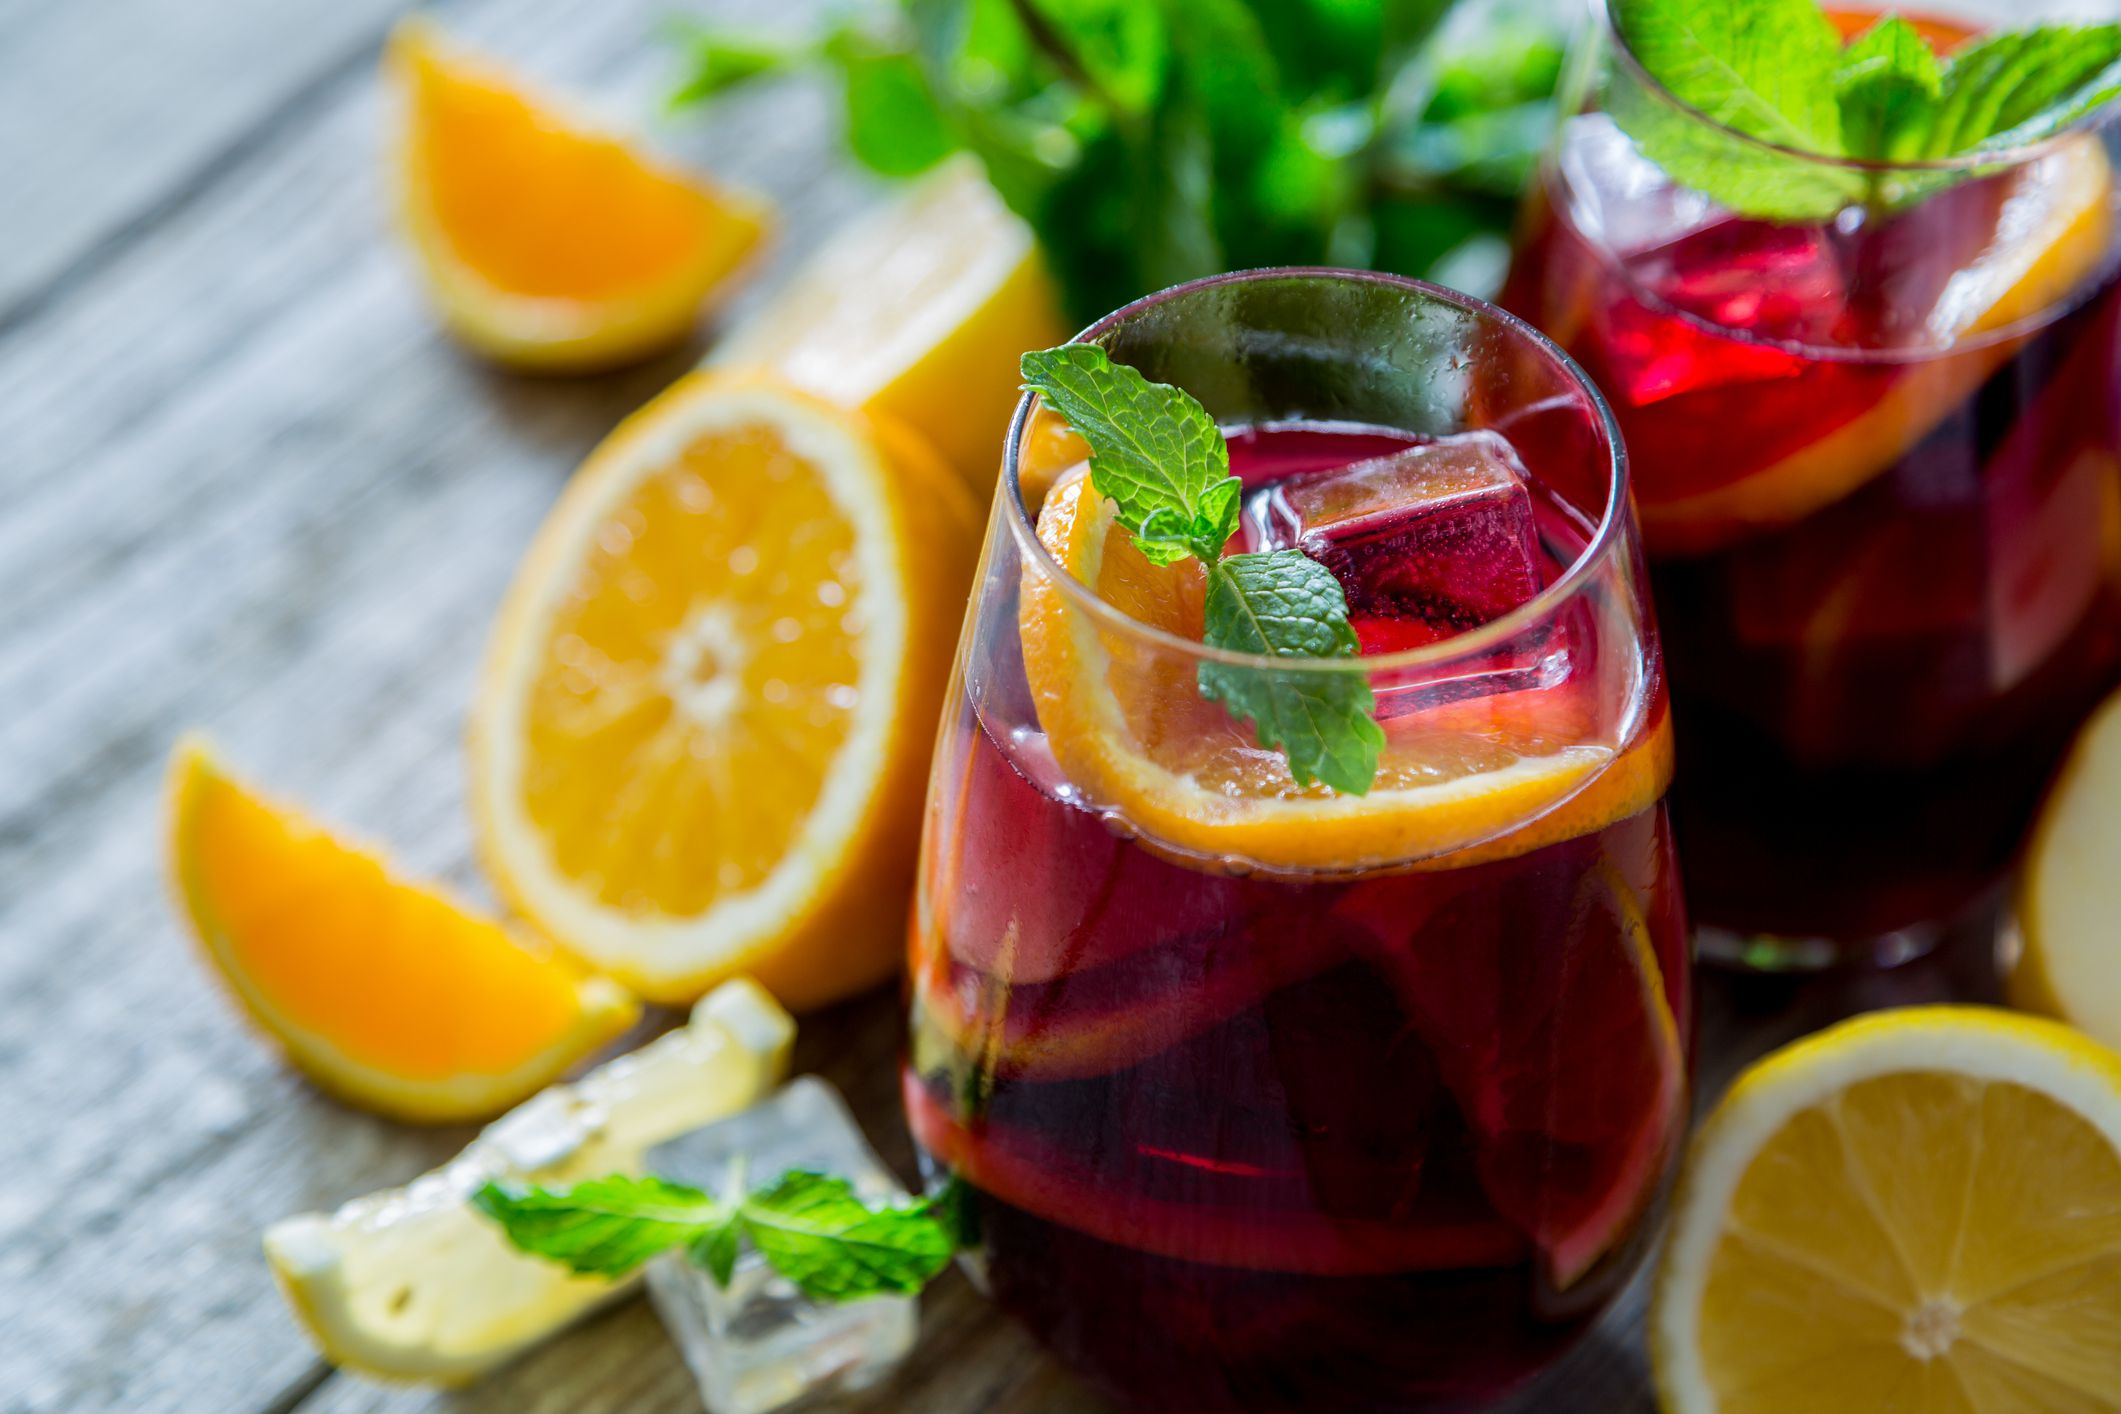 farm kitchen ideas with Quick And Easy Sangria Recipes 3511008 on Fun Facts About Flamingos 385519 furthermore Chinese Abacus And Use In Feng Shui 1274863 as well Blat Kuchenny Z Marmuru Prawdy I Mity as well 20706 in addition Quick And Easy Sangria Recipes 3511008.